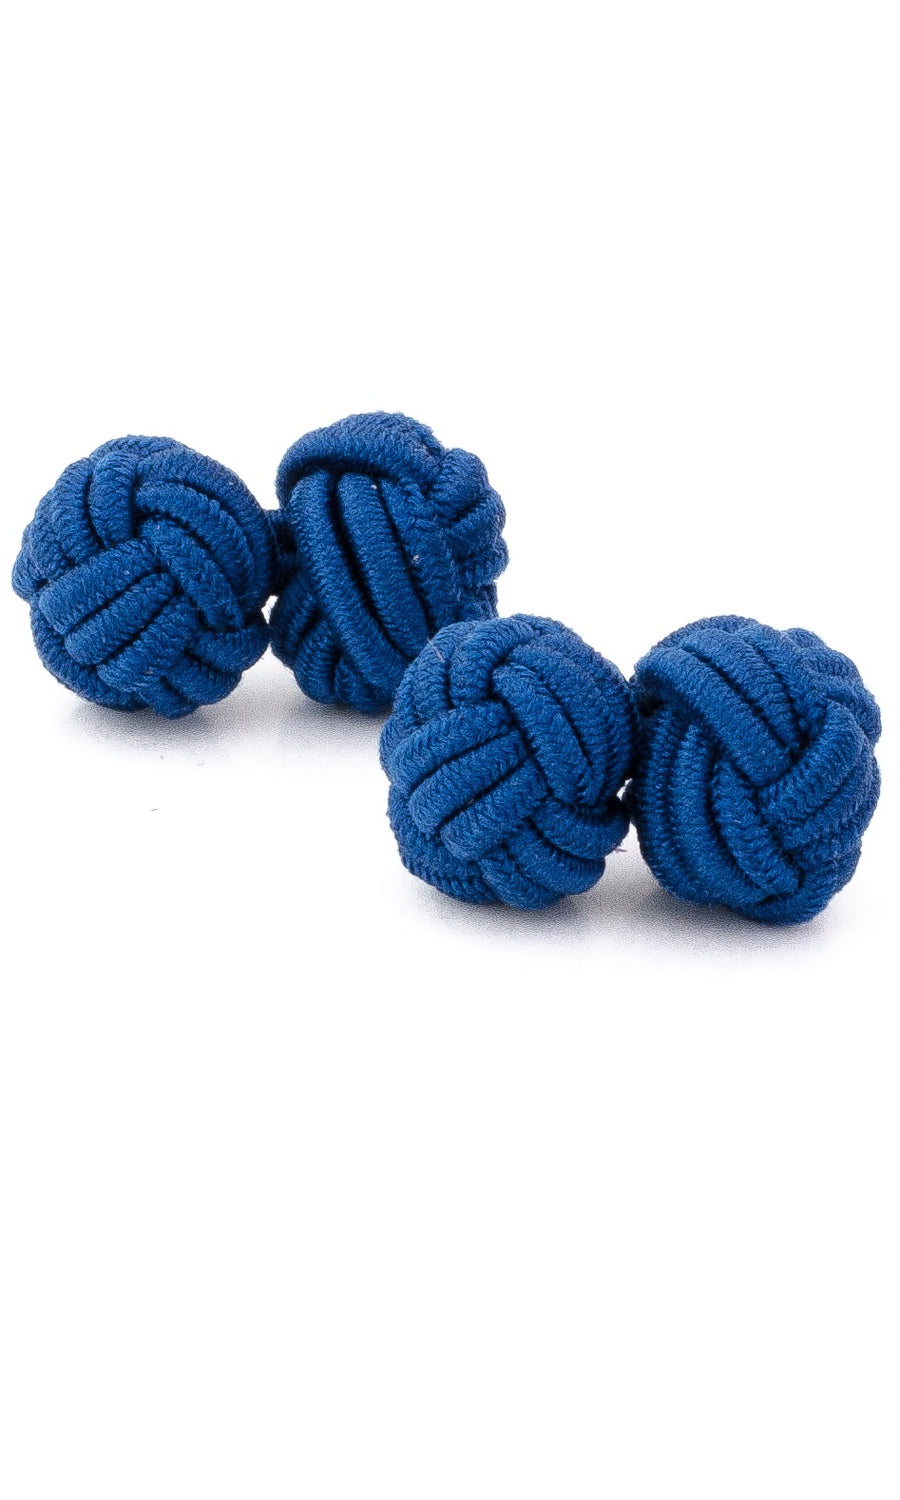 Silk Rope Knots (blue)